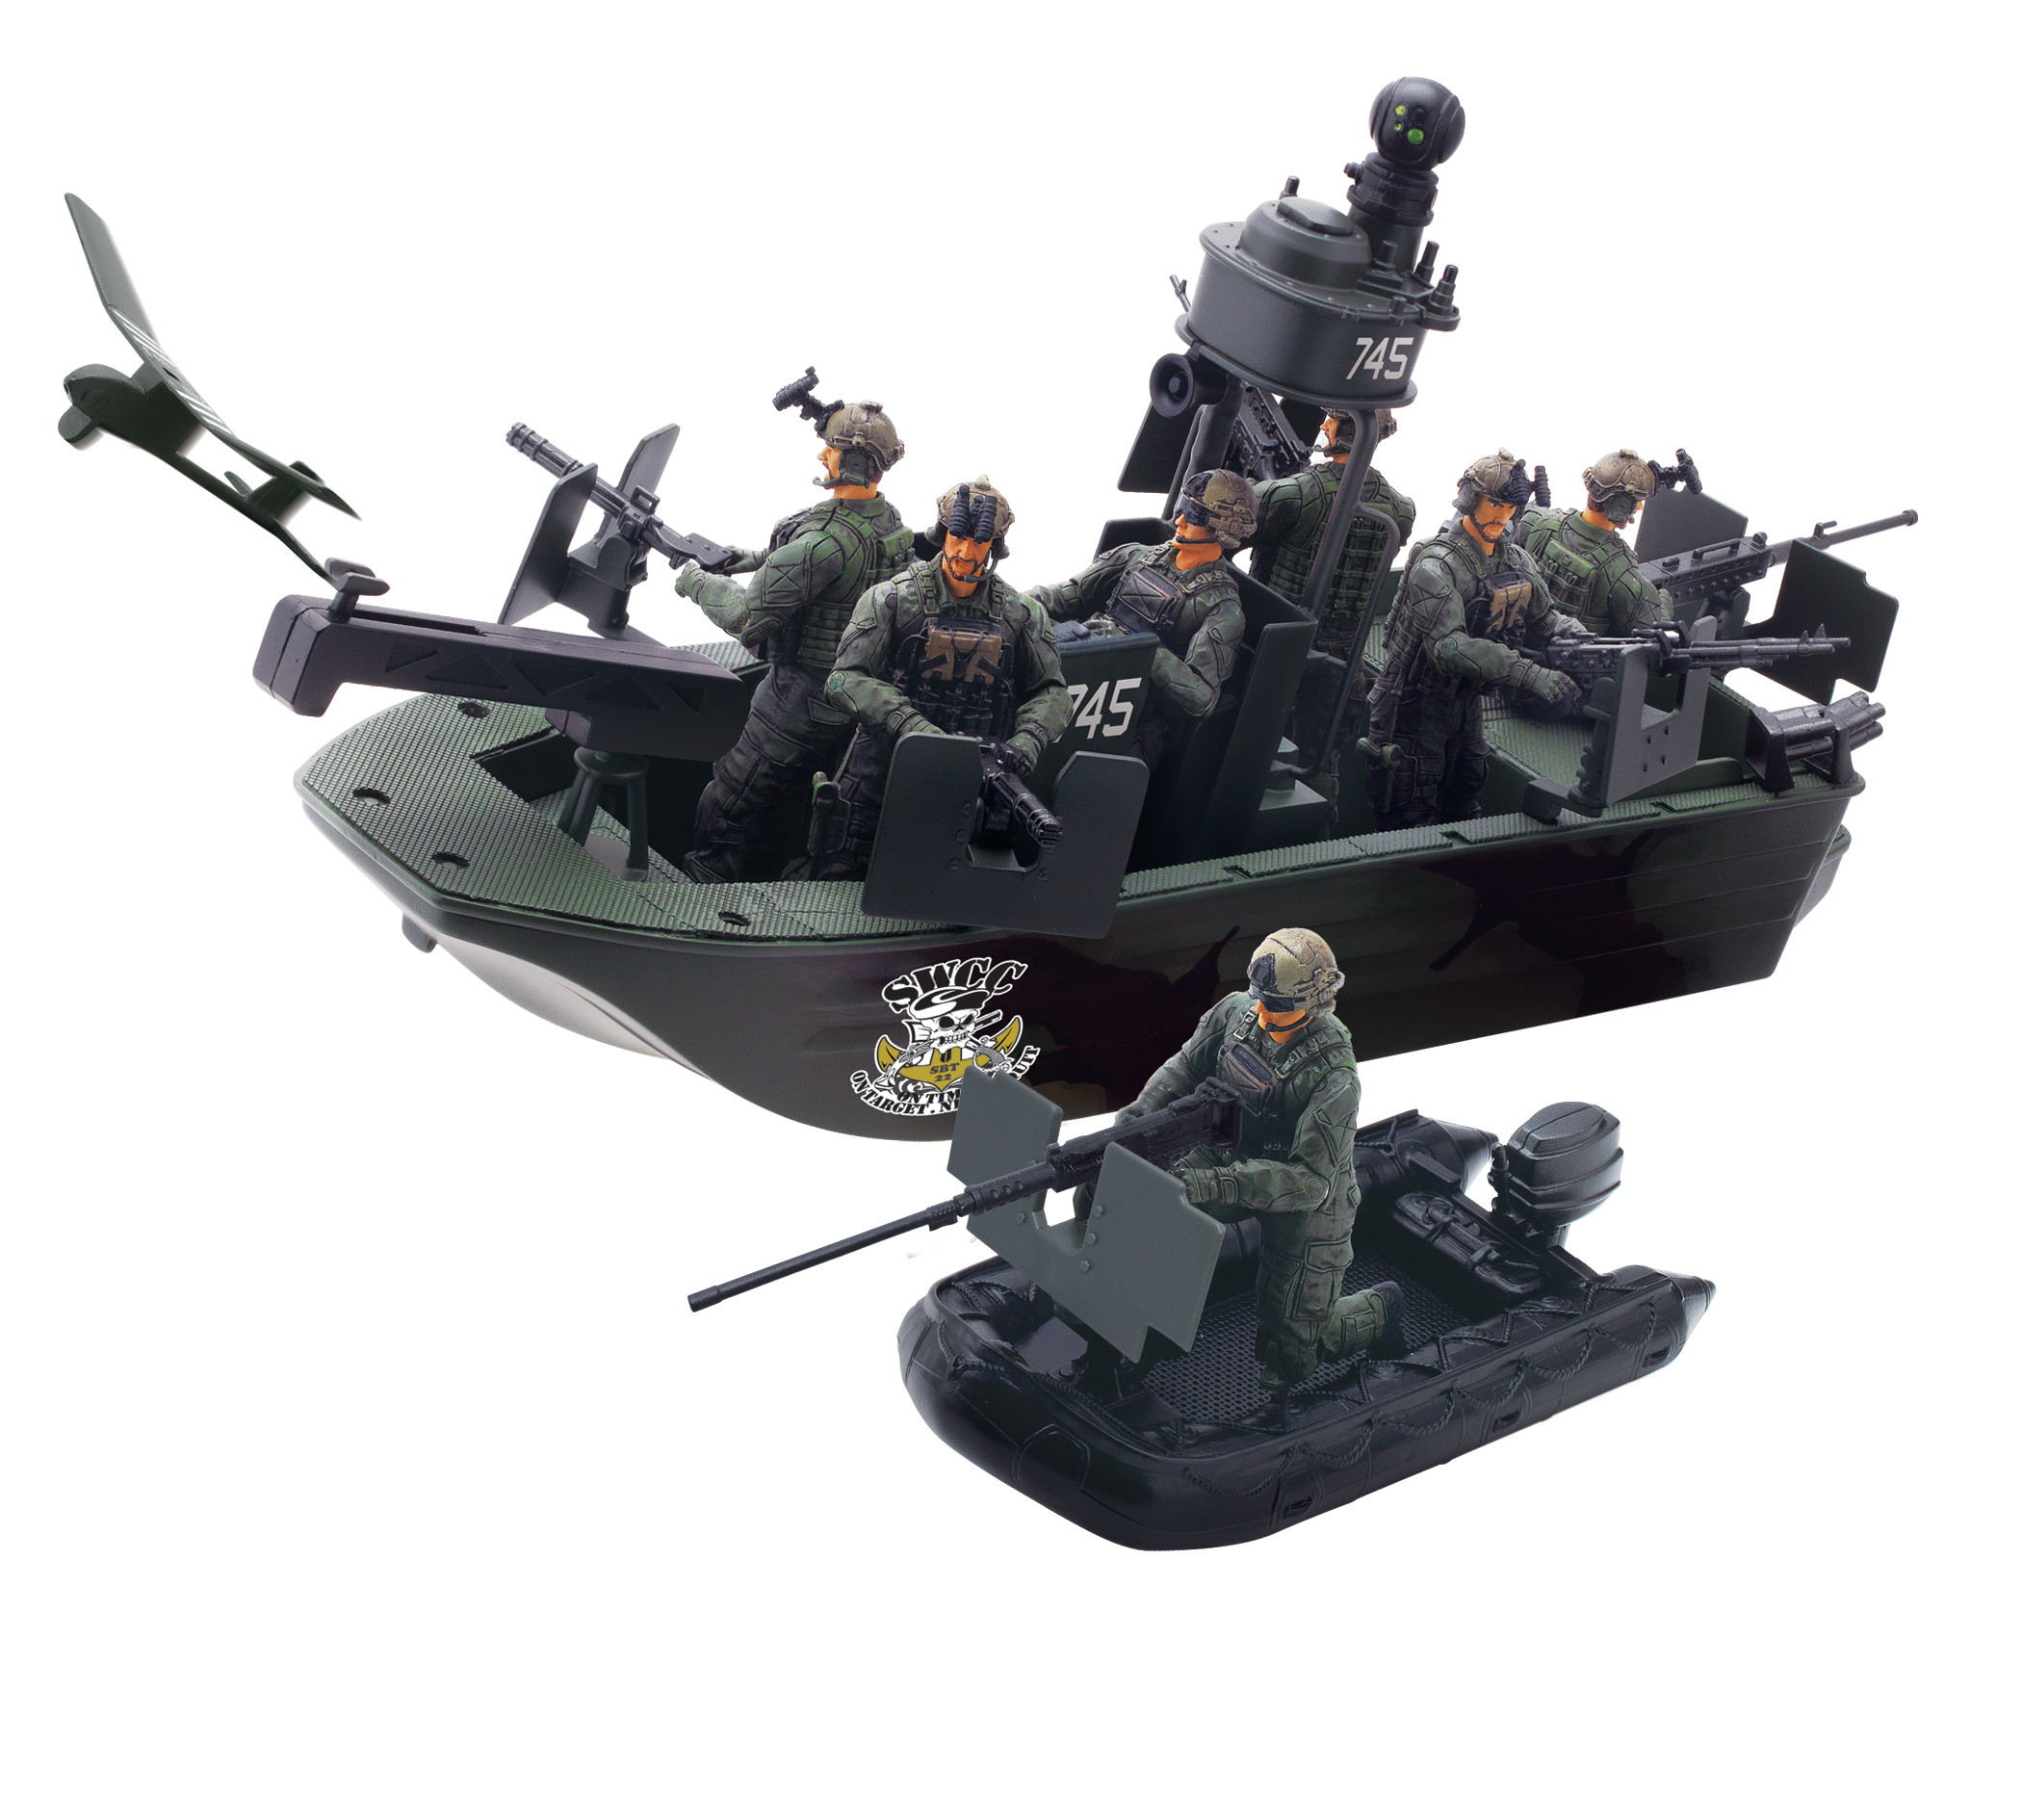 Military Toys Elite Force 1 18 : Blue box toys elite force air to land mission naval